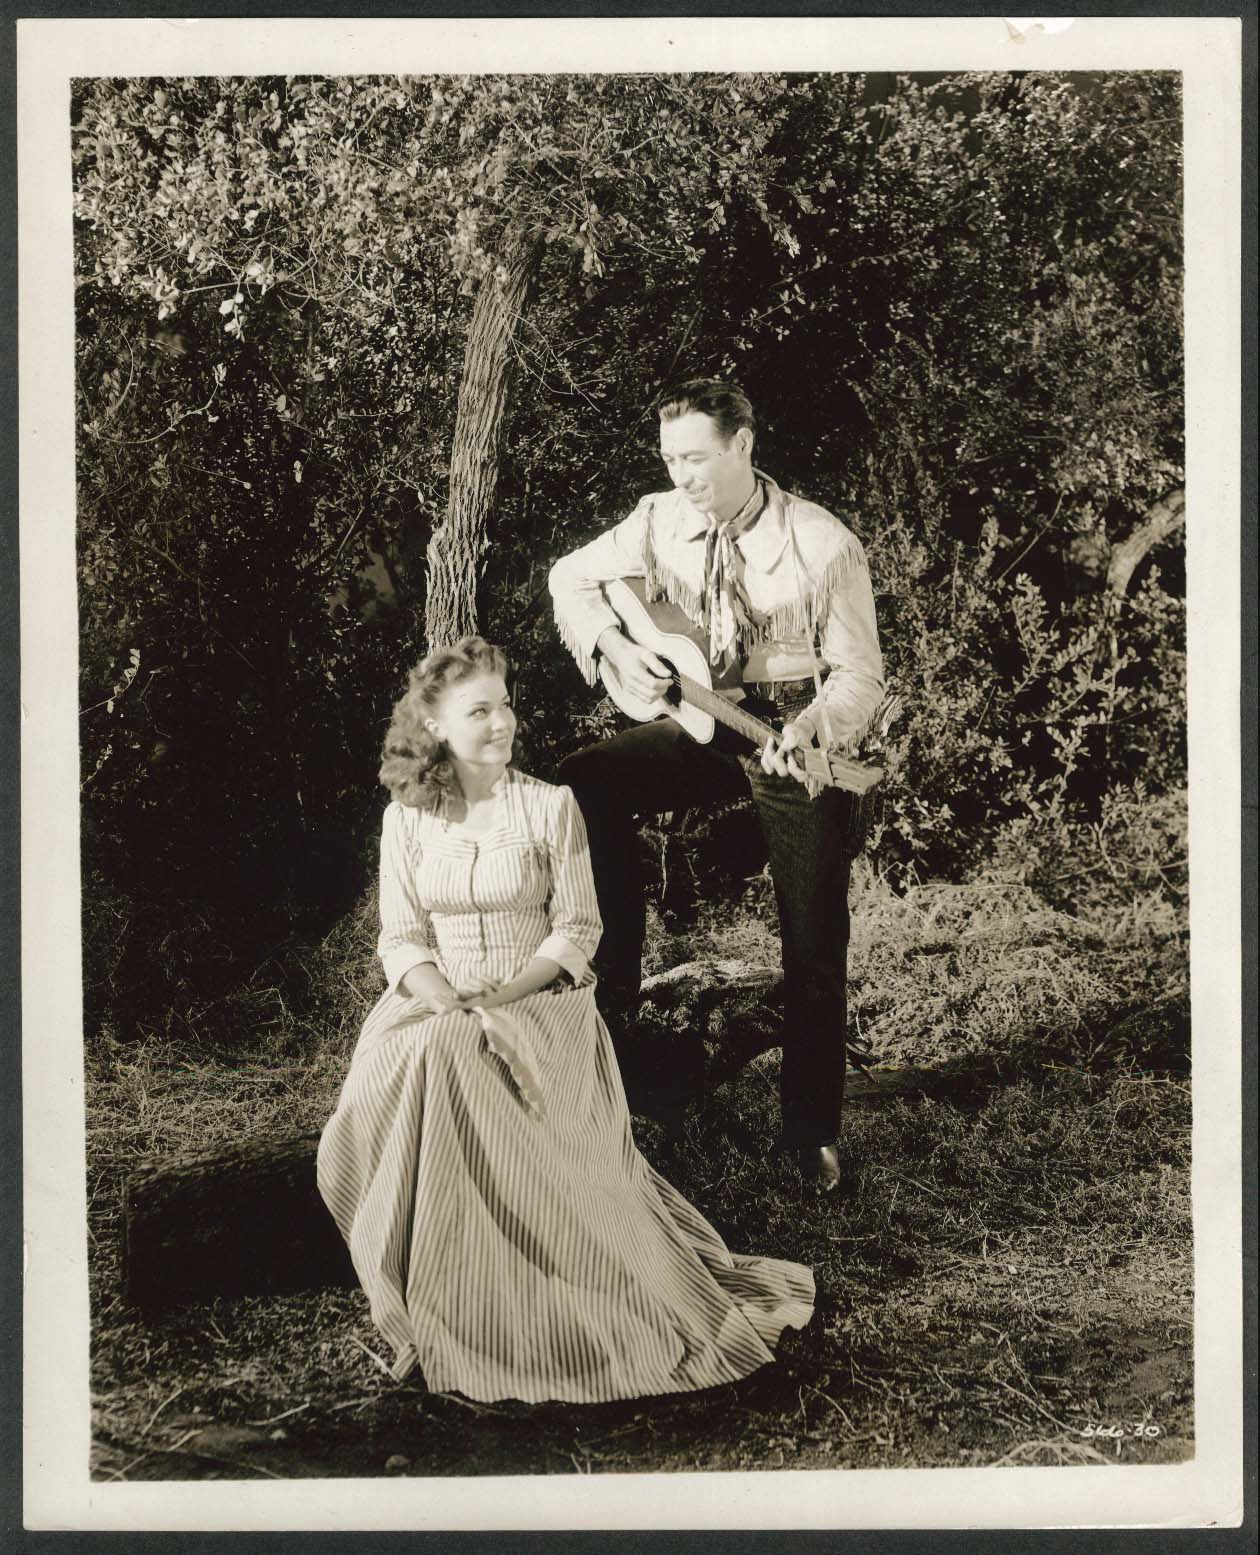 Image for Rex Allen Elisabeth Fraser in The Hills of Oklahoma 8x10 photograph 1950